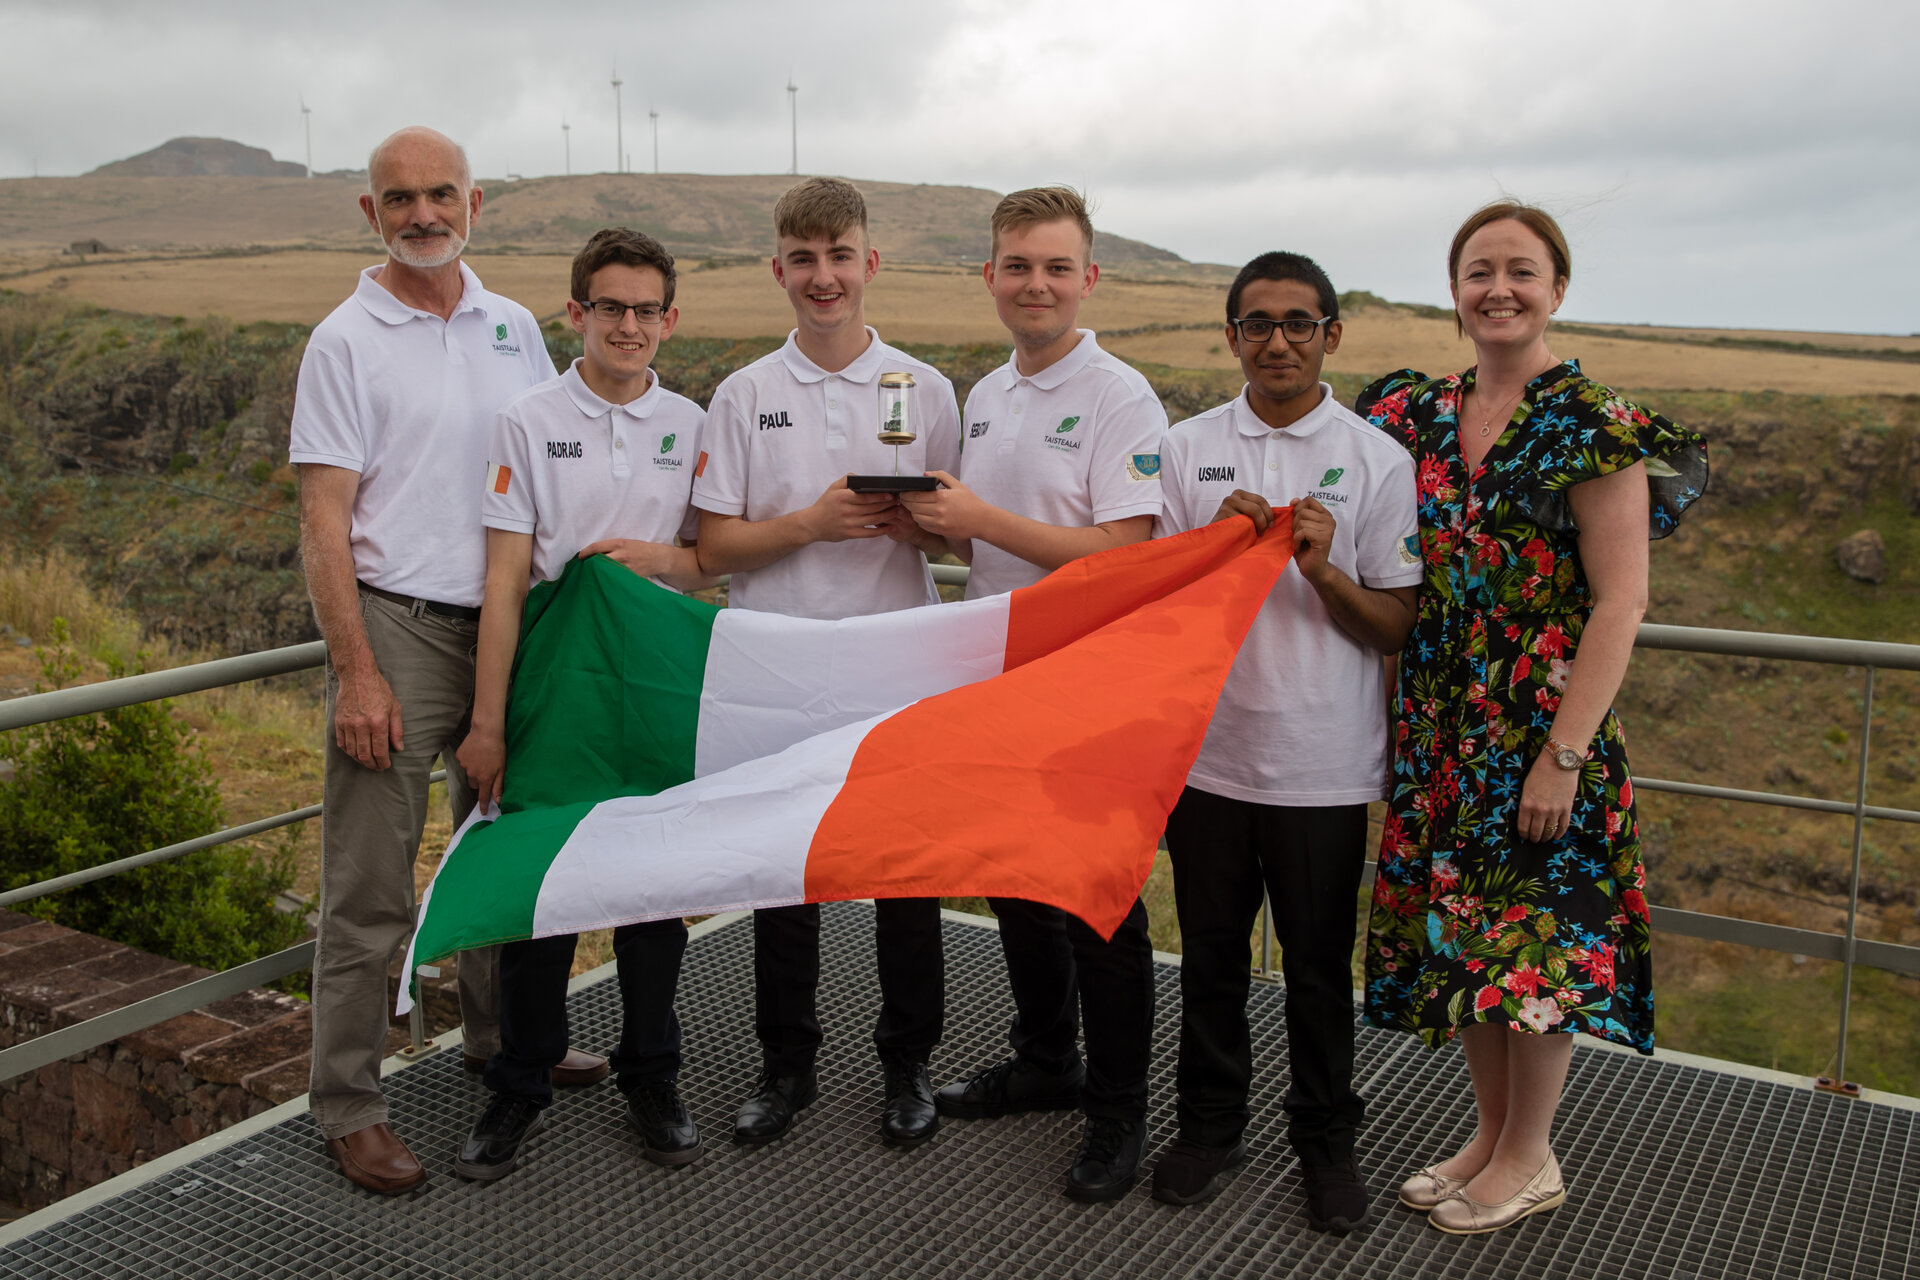 1st prize: Team Taistealai from Marist College Athlone, Ireland!